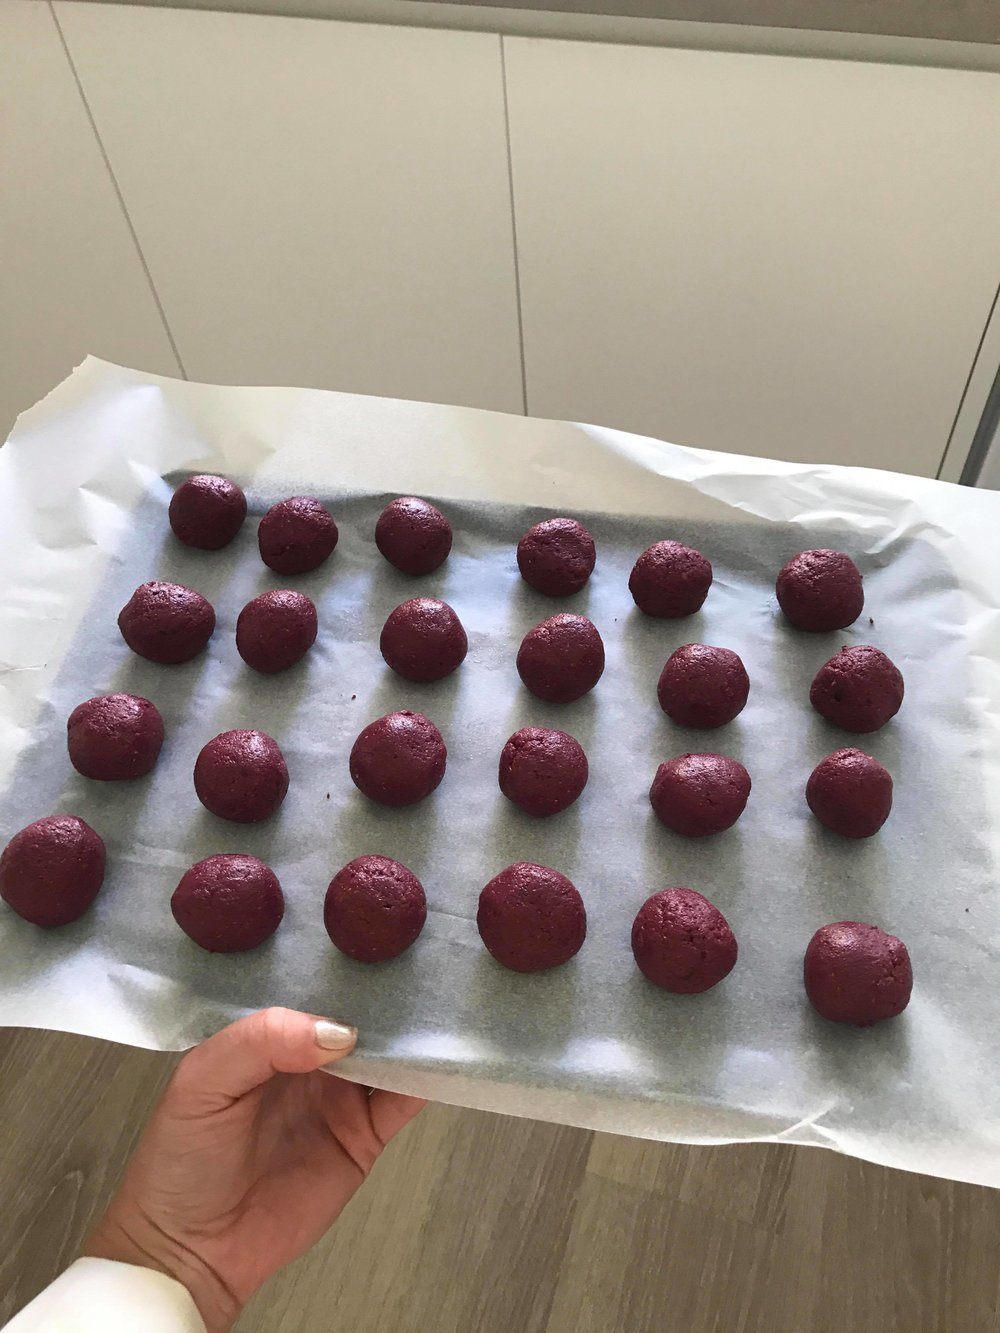 My sister turned them into delicious beetroot snacks.